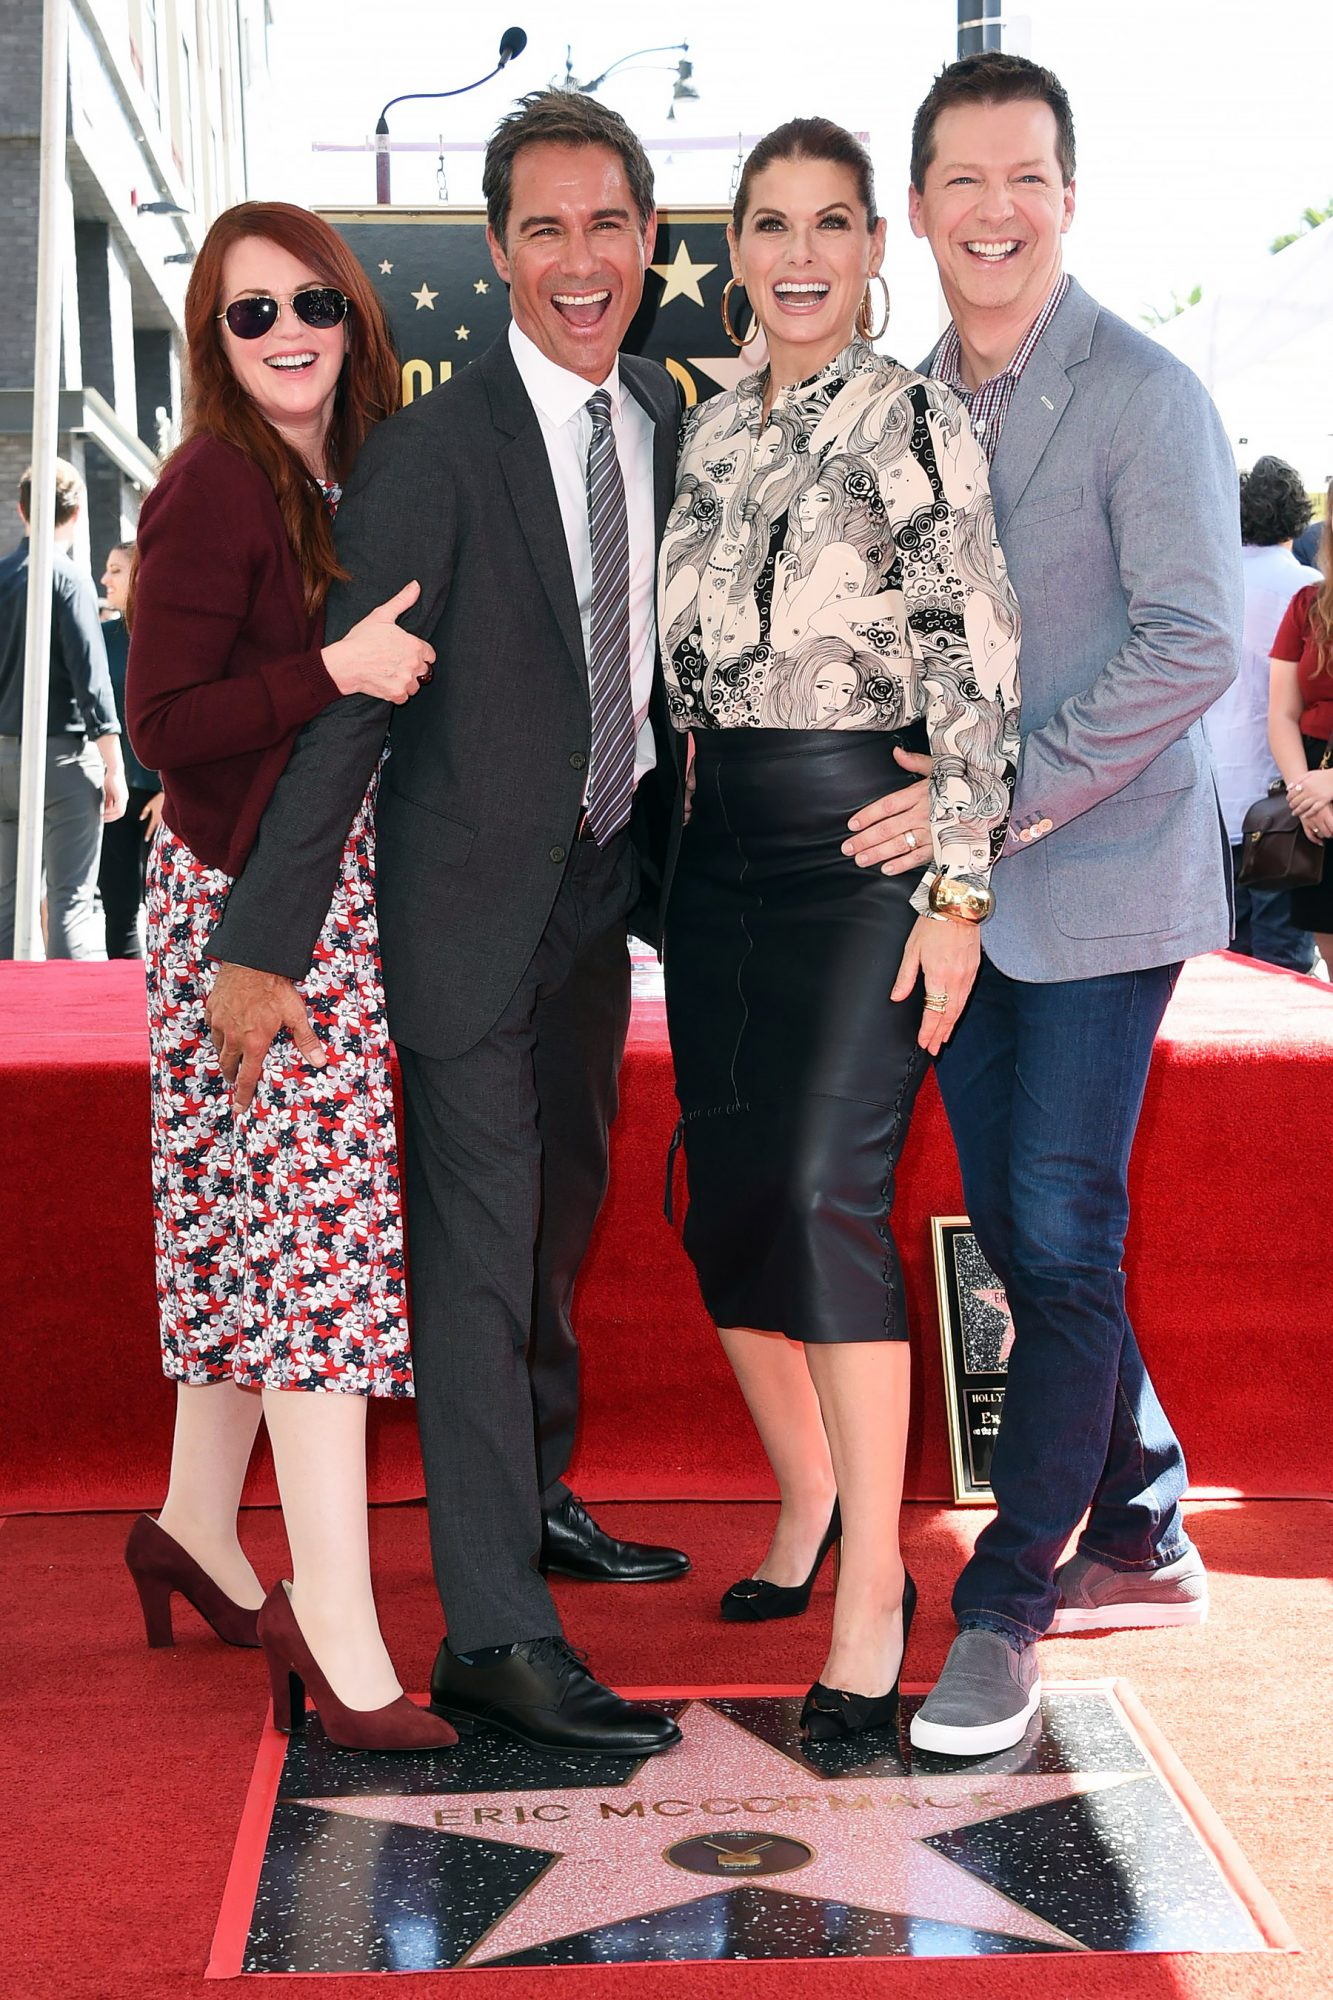 Eric McCormack Honored with a Star on the Hollywood Walk of Fame, Los Angeles, USA - 13 Sep 2018